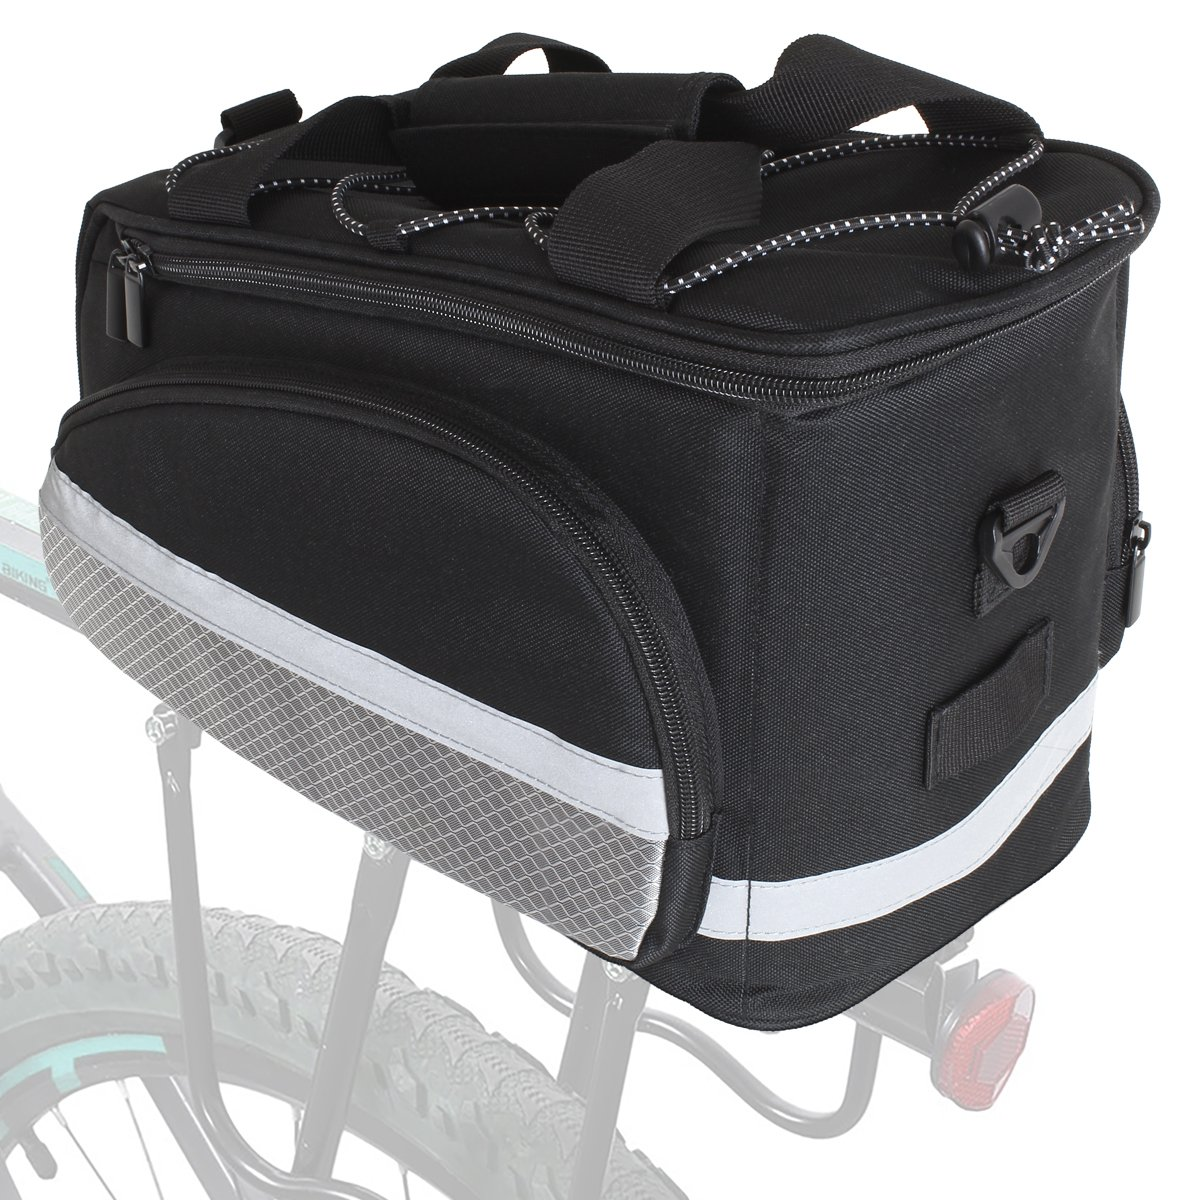 KOMODO Bike Bicycle Expandable Rear Rack Pannier Bag with Side Storage Black Bottle Holder Carry Strap and Rain Cover//Seat Saddle Water Resistant